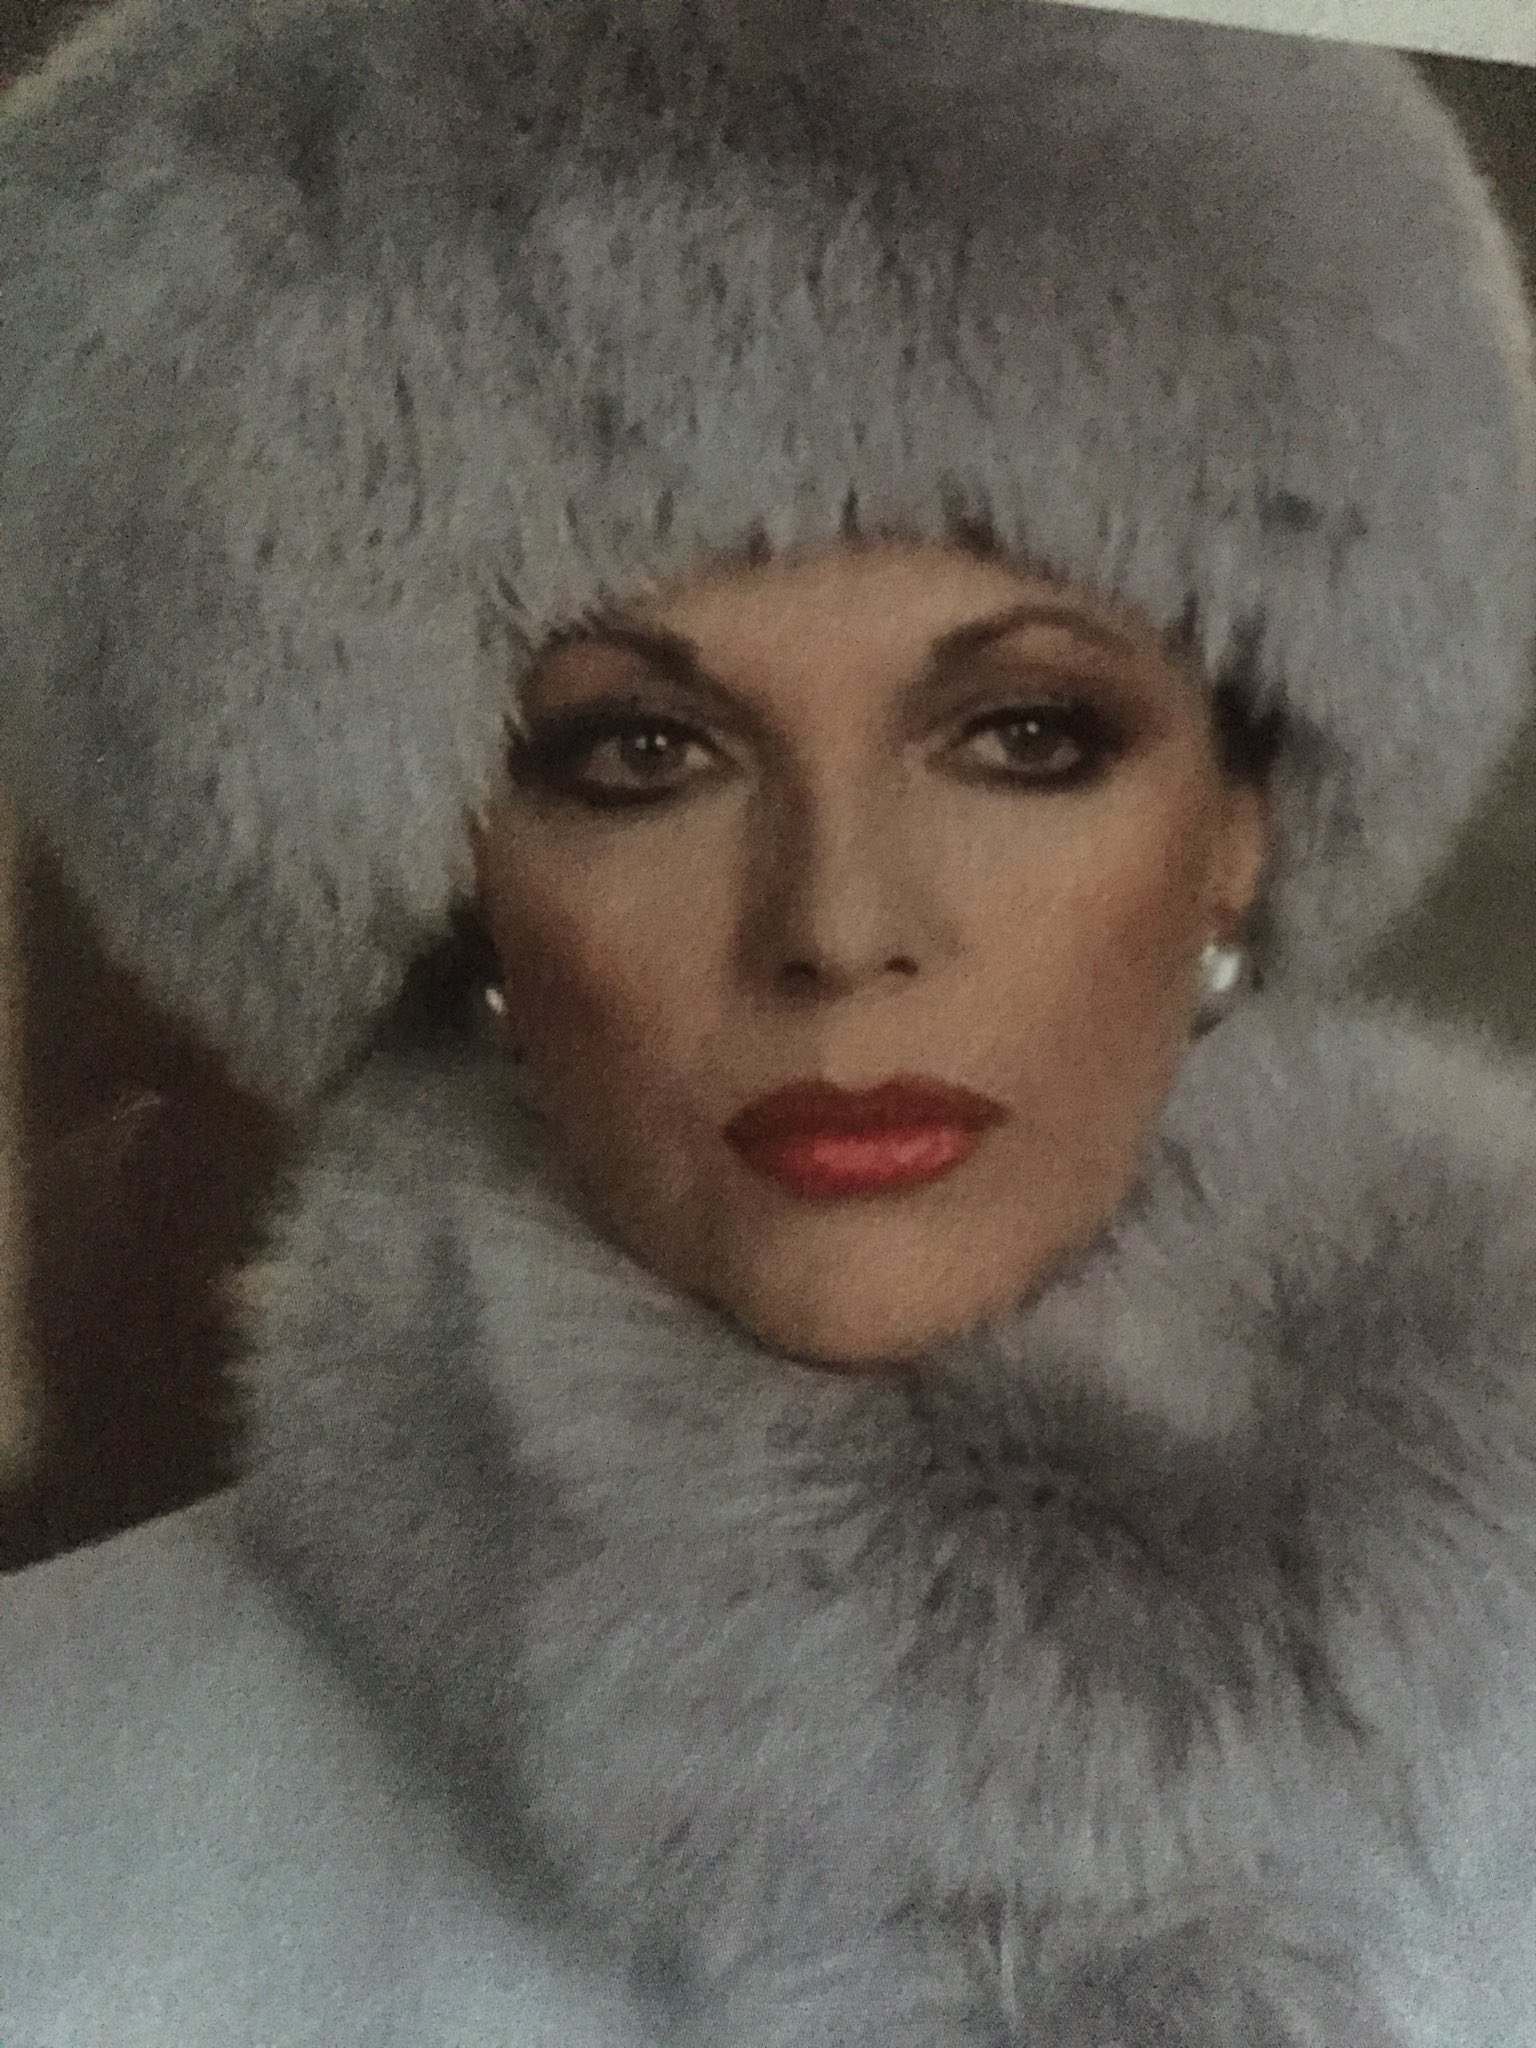 Joan Collins on Twitter: In the spirit of the 80s,Alexis